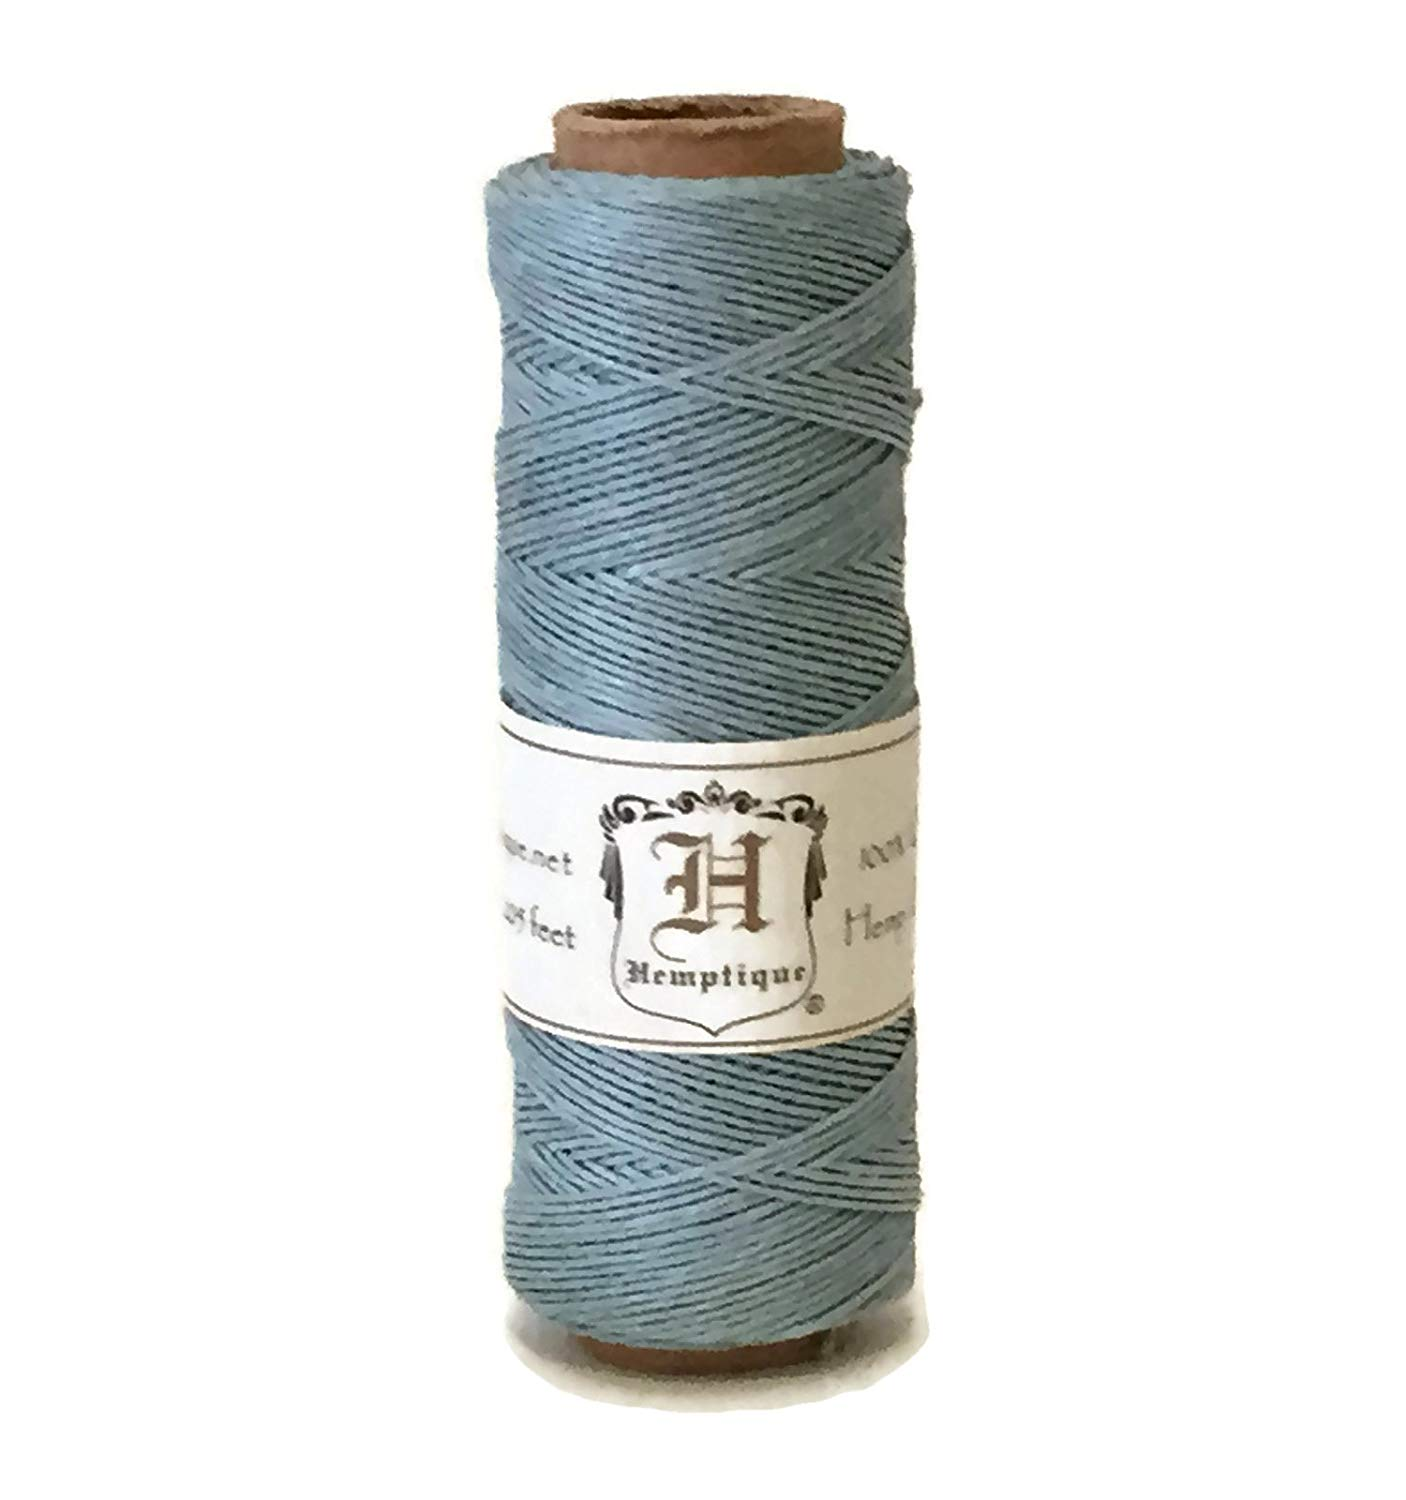 Green Blue and Pink Hemp Twine Mix 20lb Test 1mm Diameter 12 Colors 360 Feet of Cord and Free Jewelry Making Project